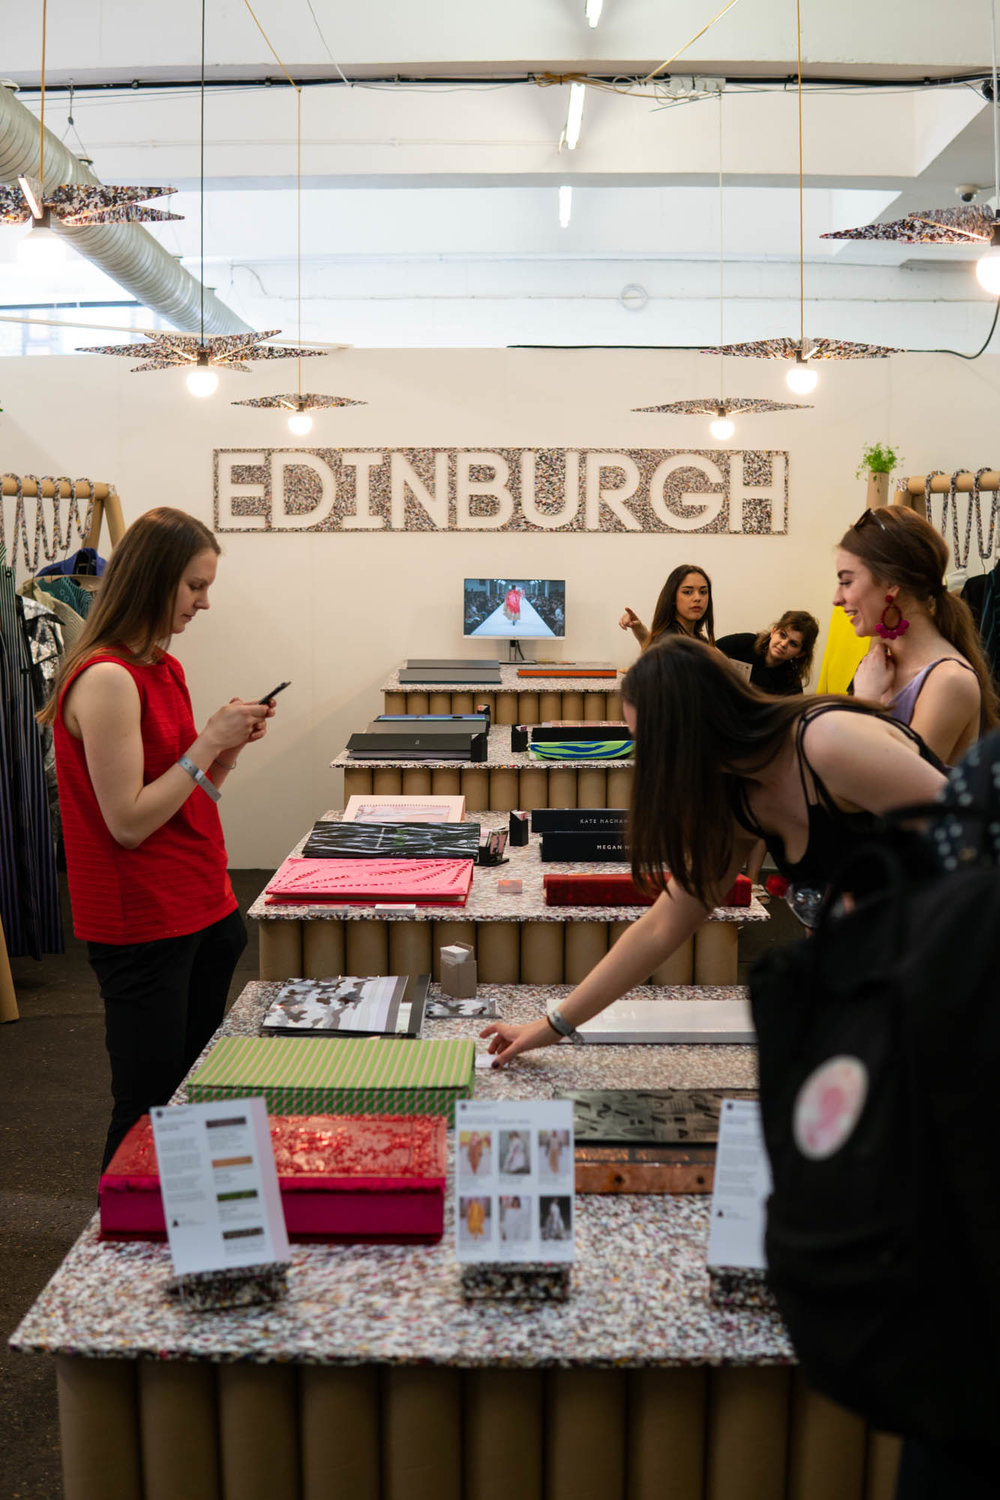 Edinburgh College of Art 030618 Imageby Stefan-3.jpg